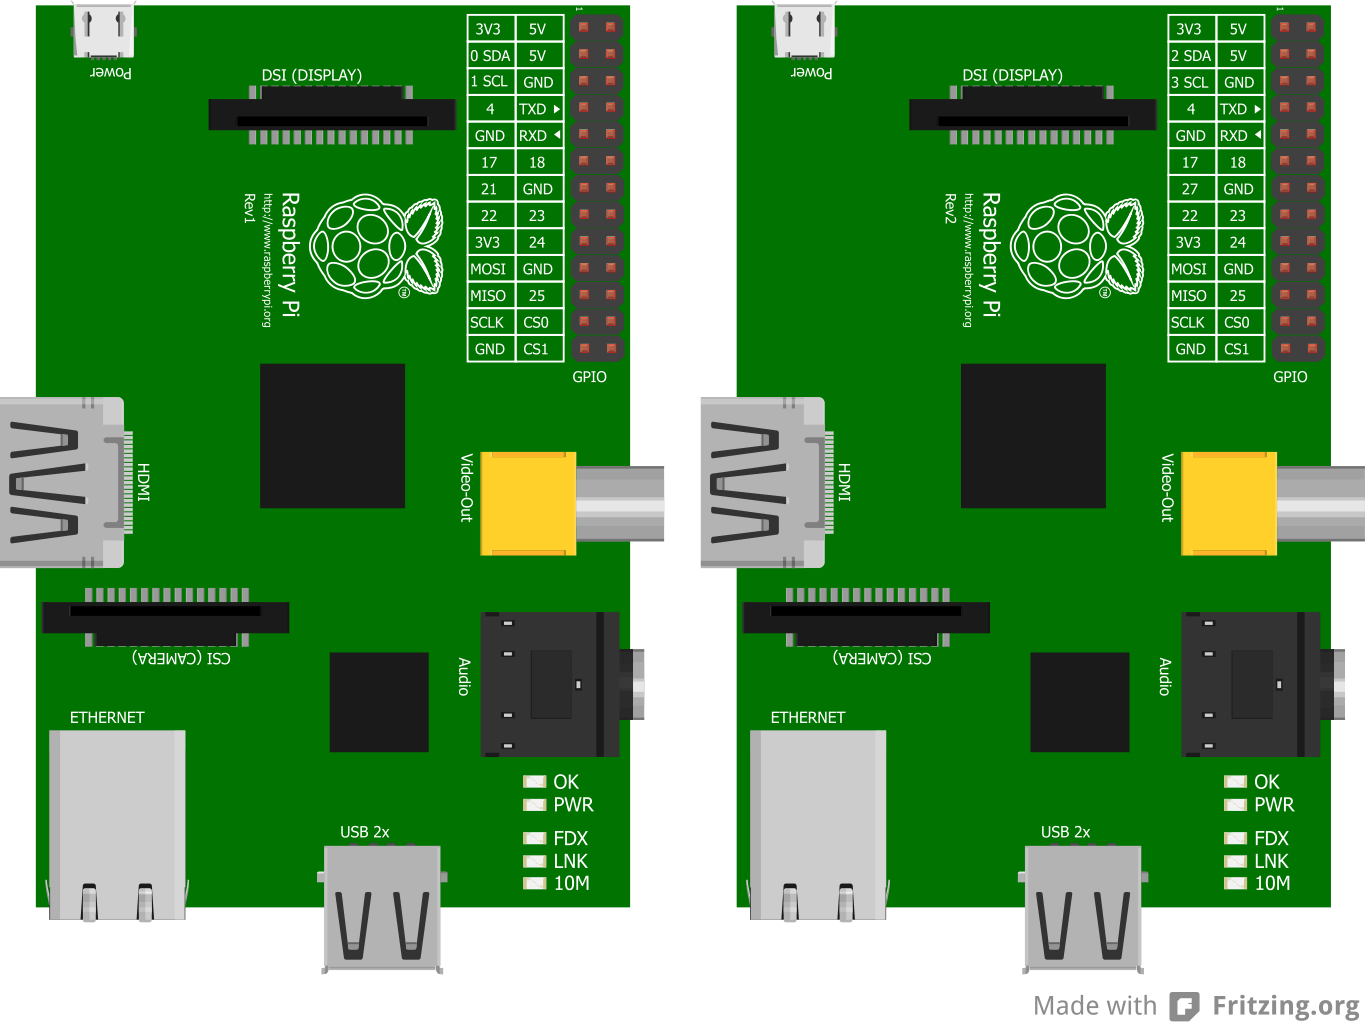 raspberry pi 3 model b wiring diagram 1954 mg tf 35 images new graphics and models for fritzing raspi tv